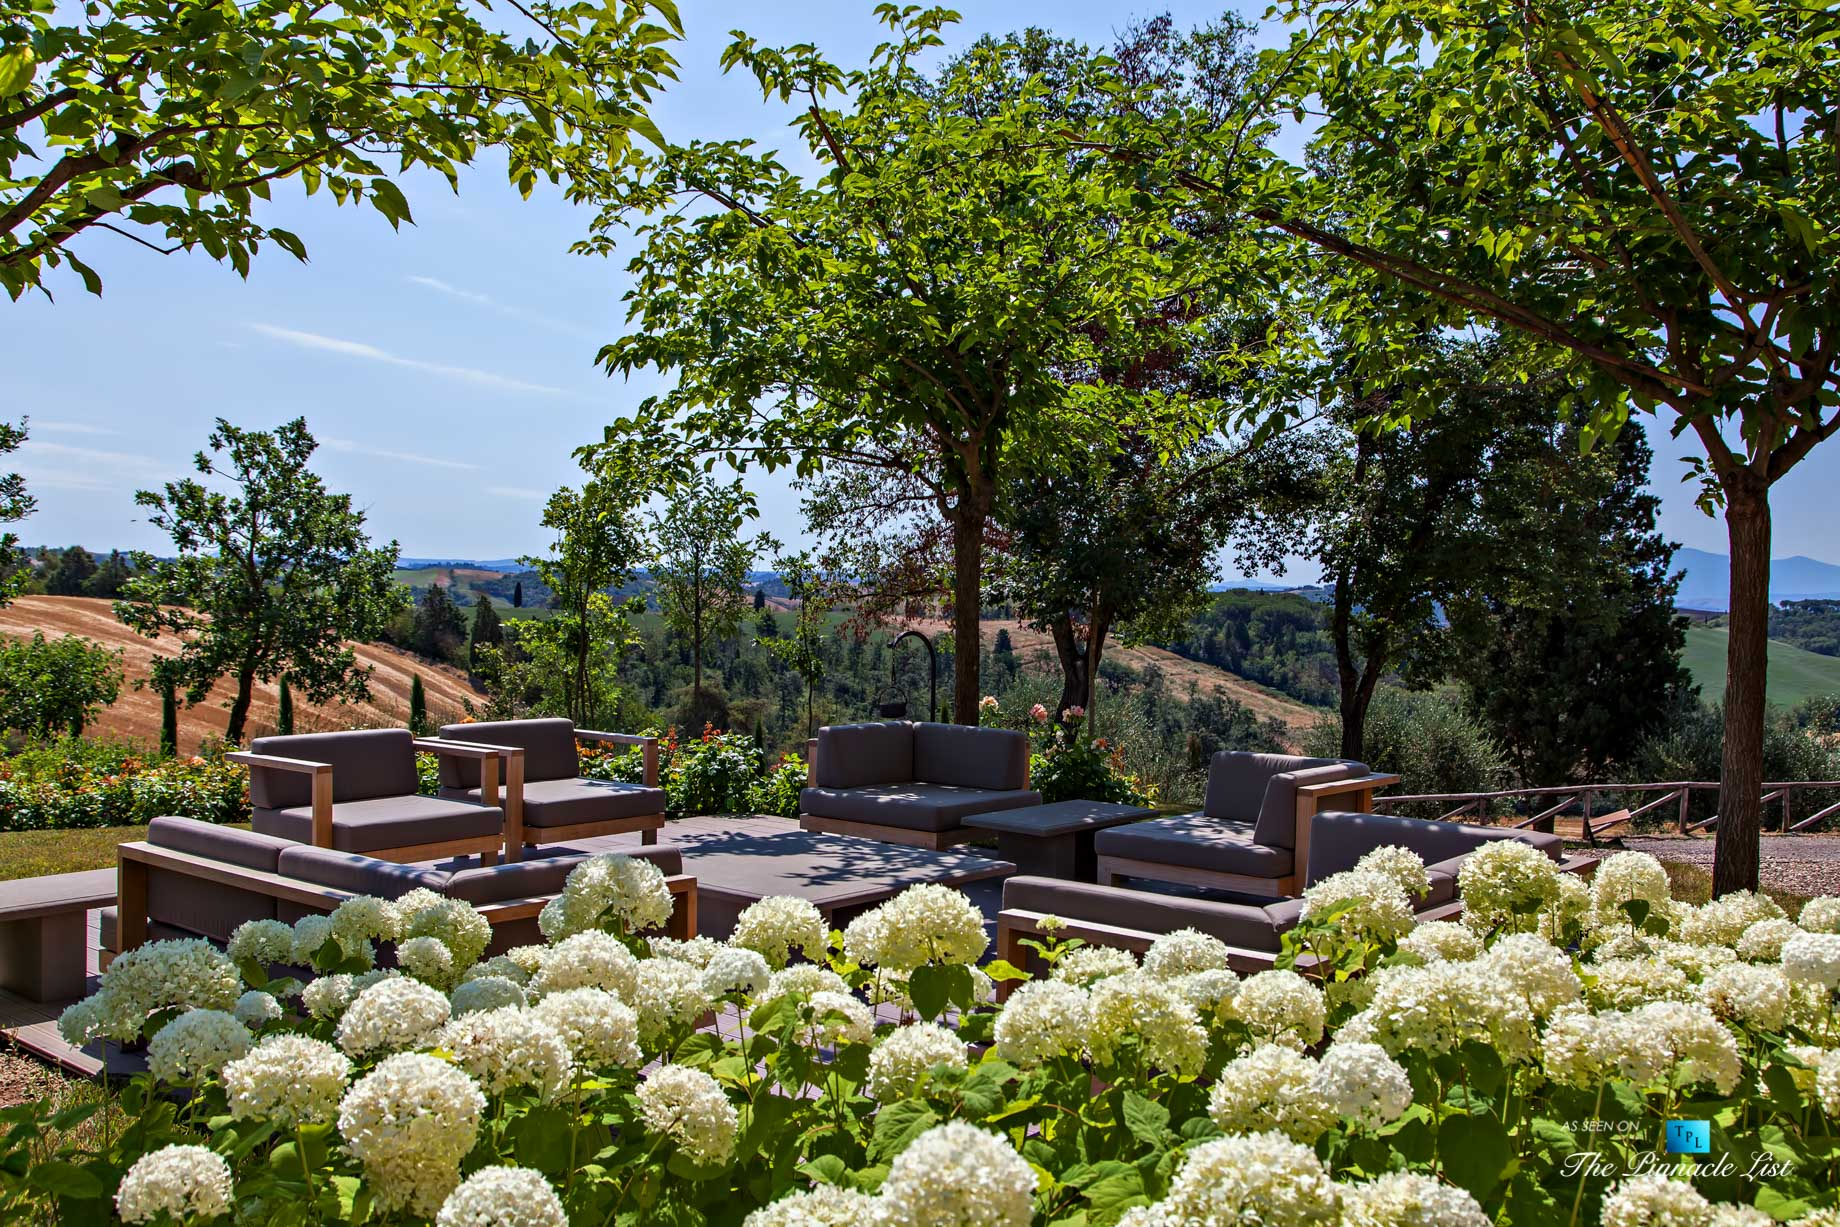 Podere Paníco Estate – Monteroni d'Arbia, Tuscany, Italy – Property Deck with Lounge Chairs – Luxury Real Estate – Tuscan Villa